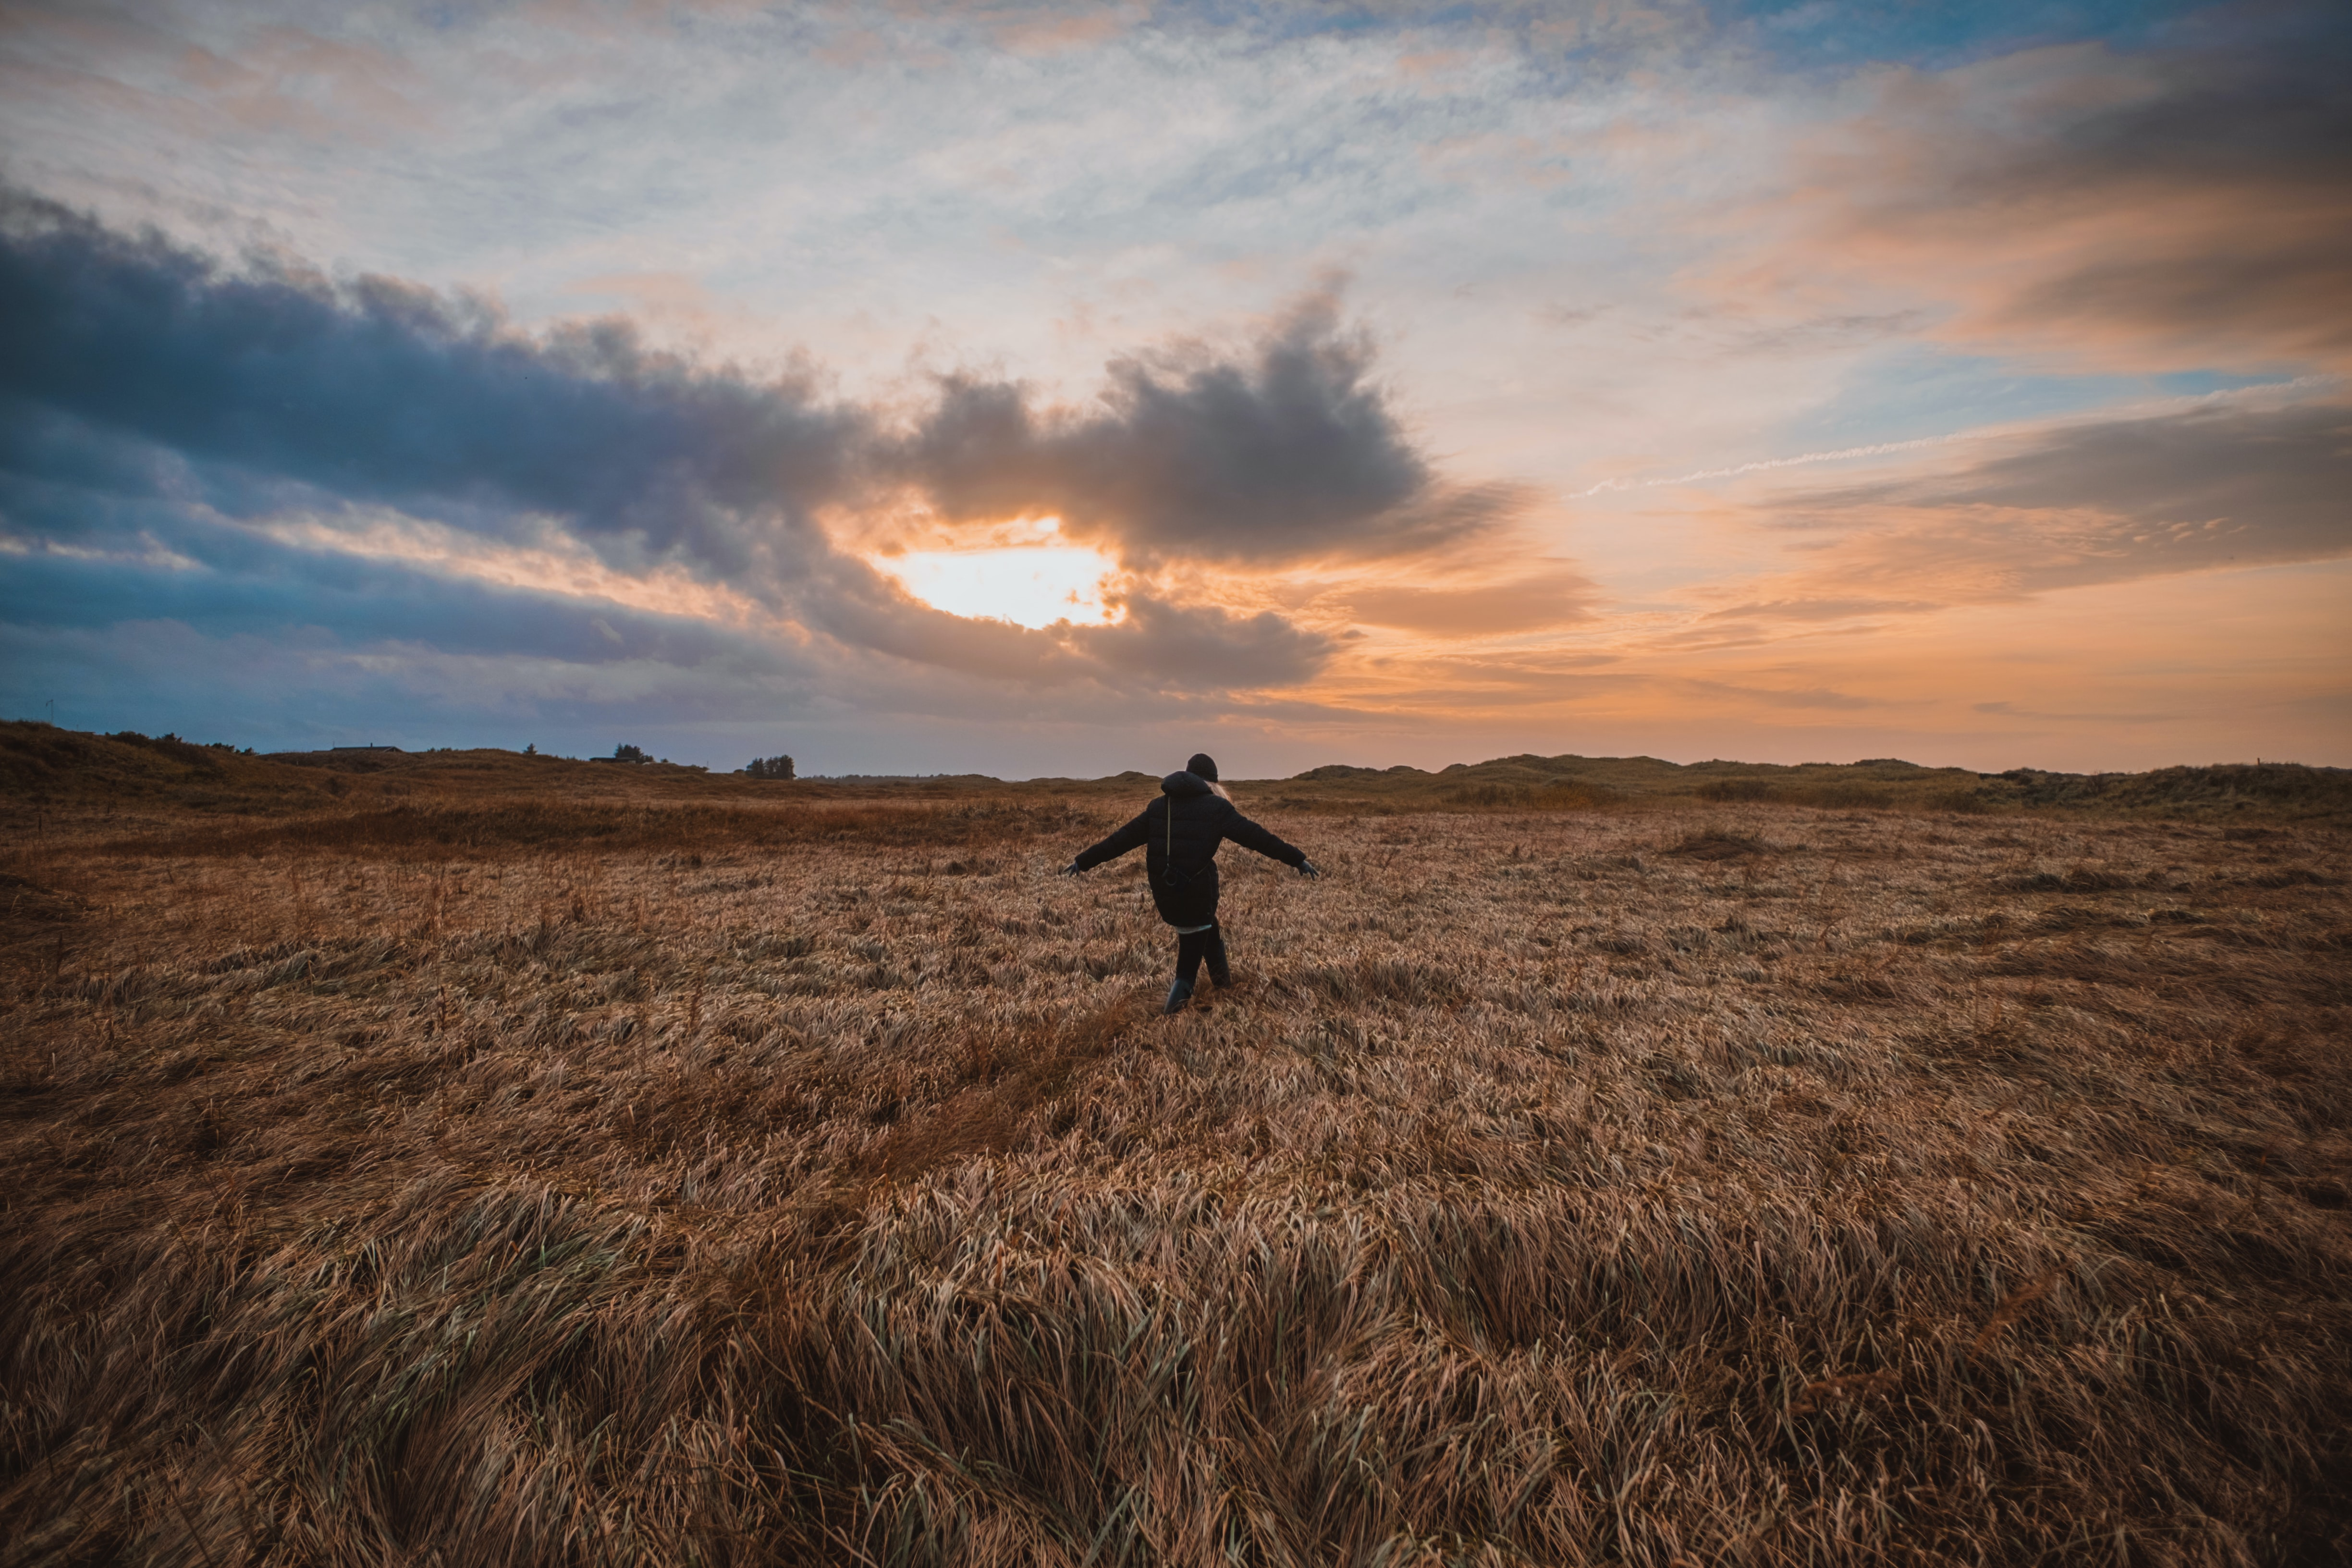 person walking on field under gray clouds